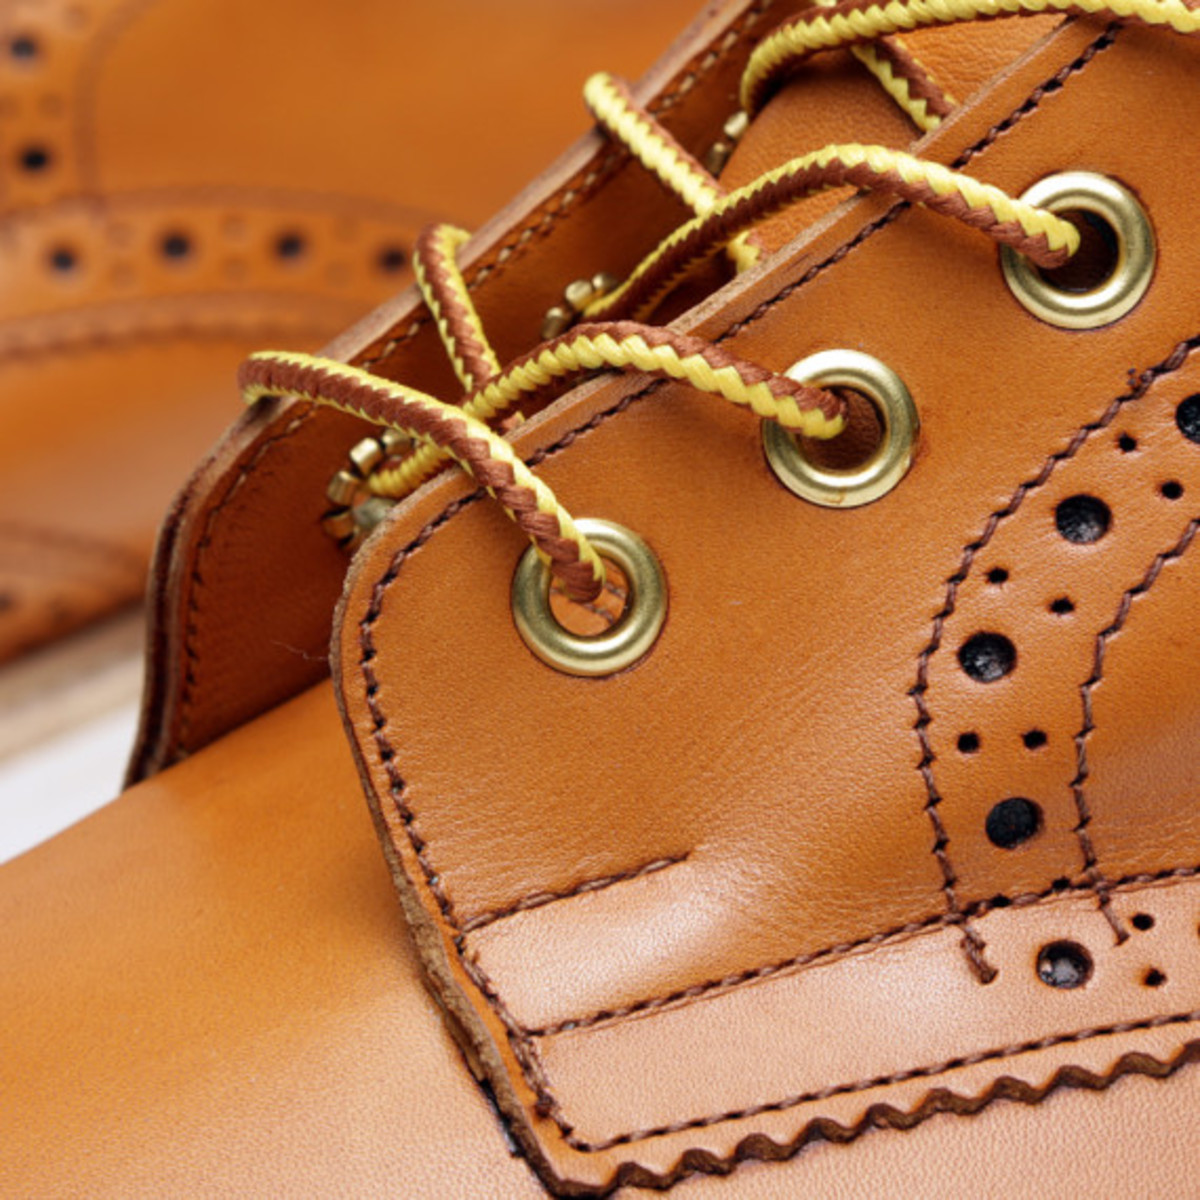 end-trickers-vibram-sole-stow-boot-27